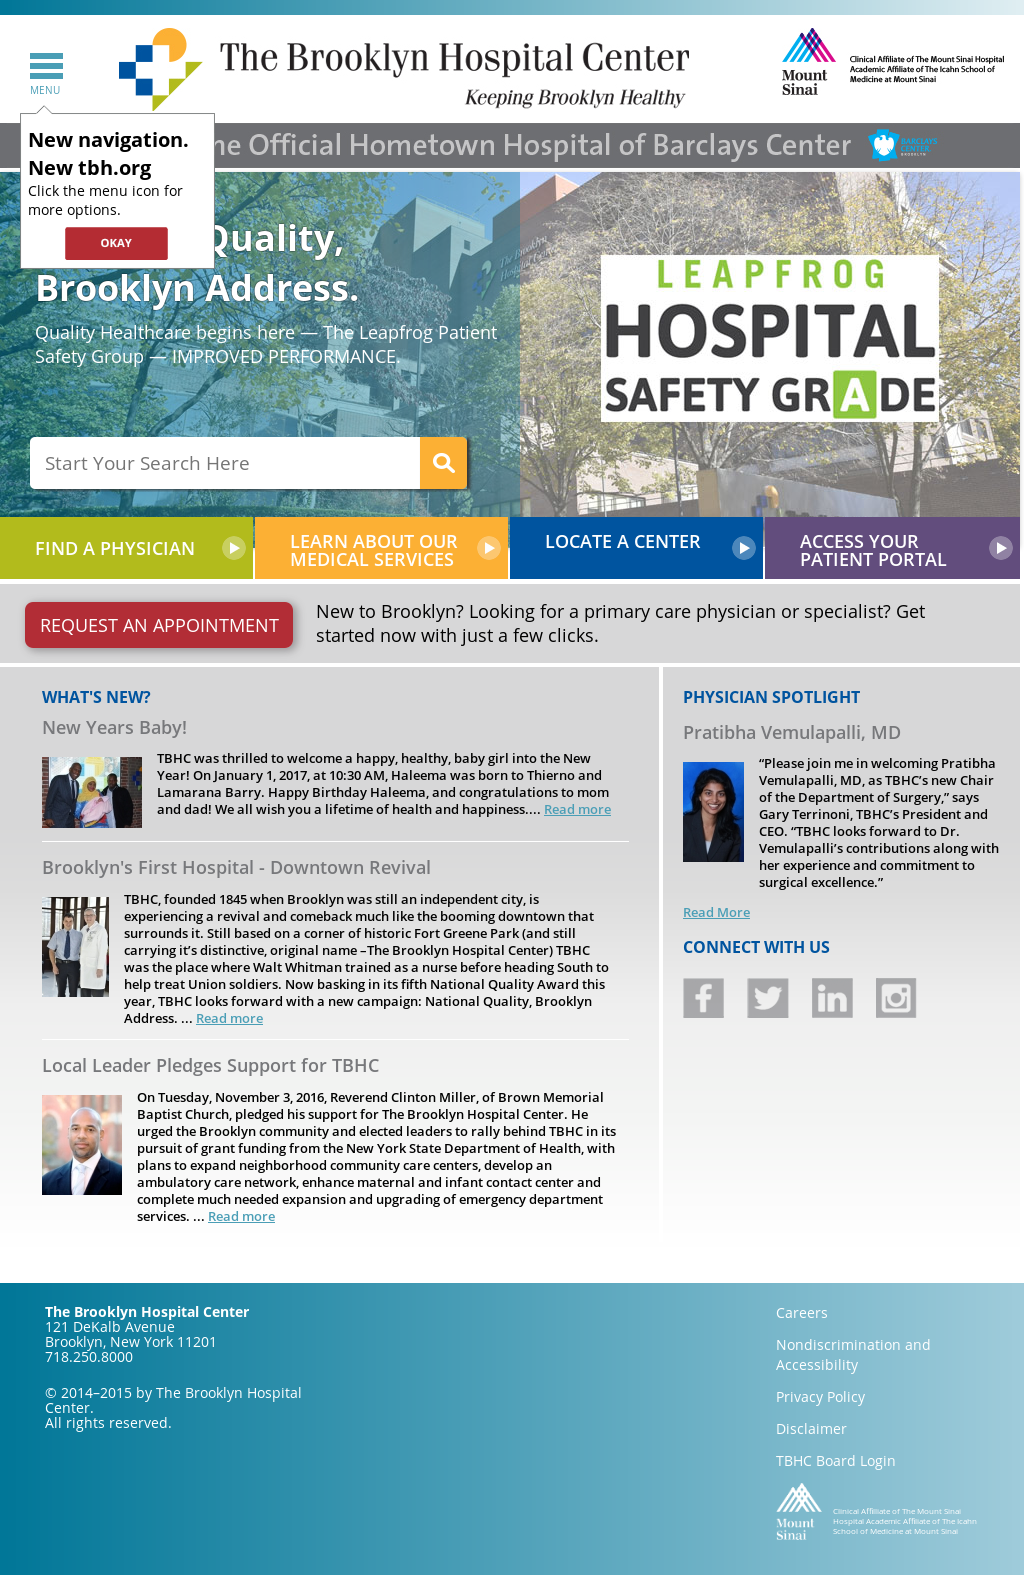 Brooklyn Hospital Competitors, Revenue and Employees - Owler